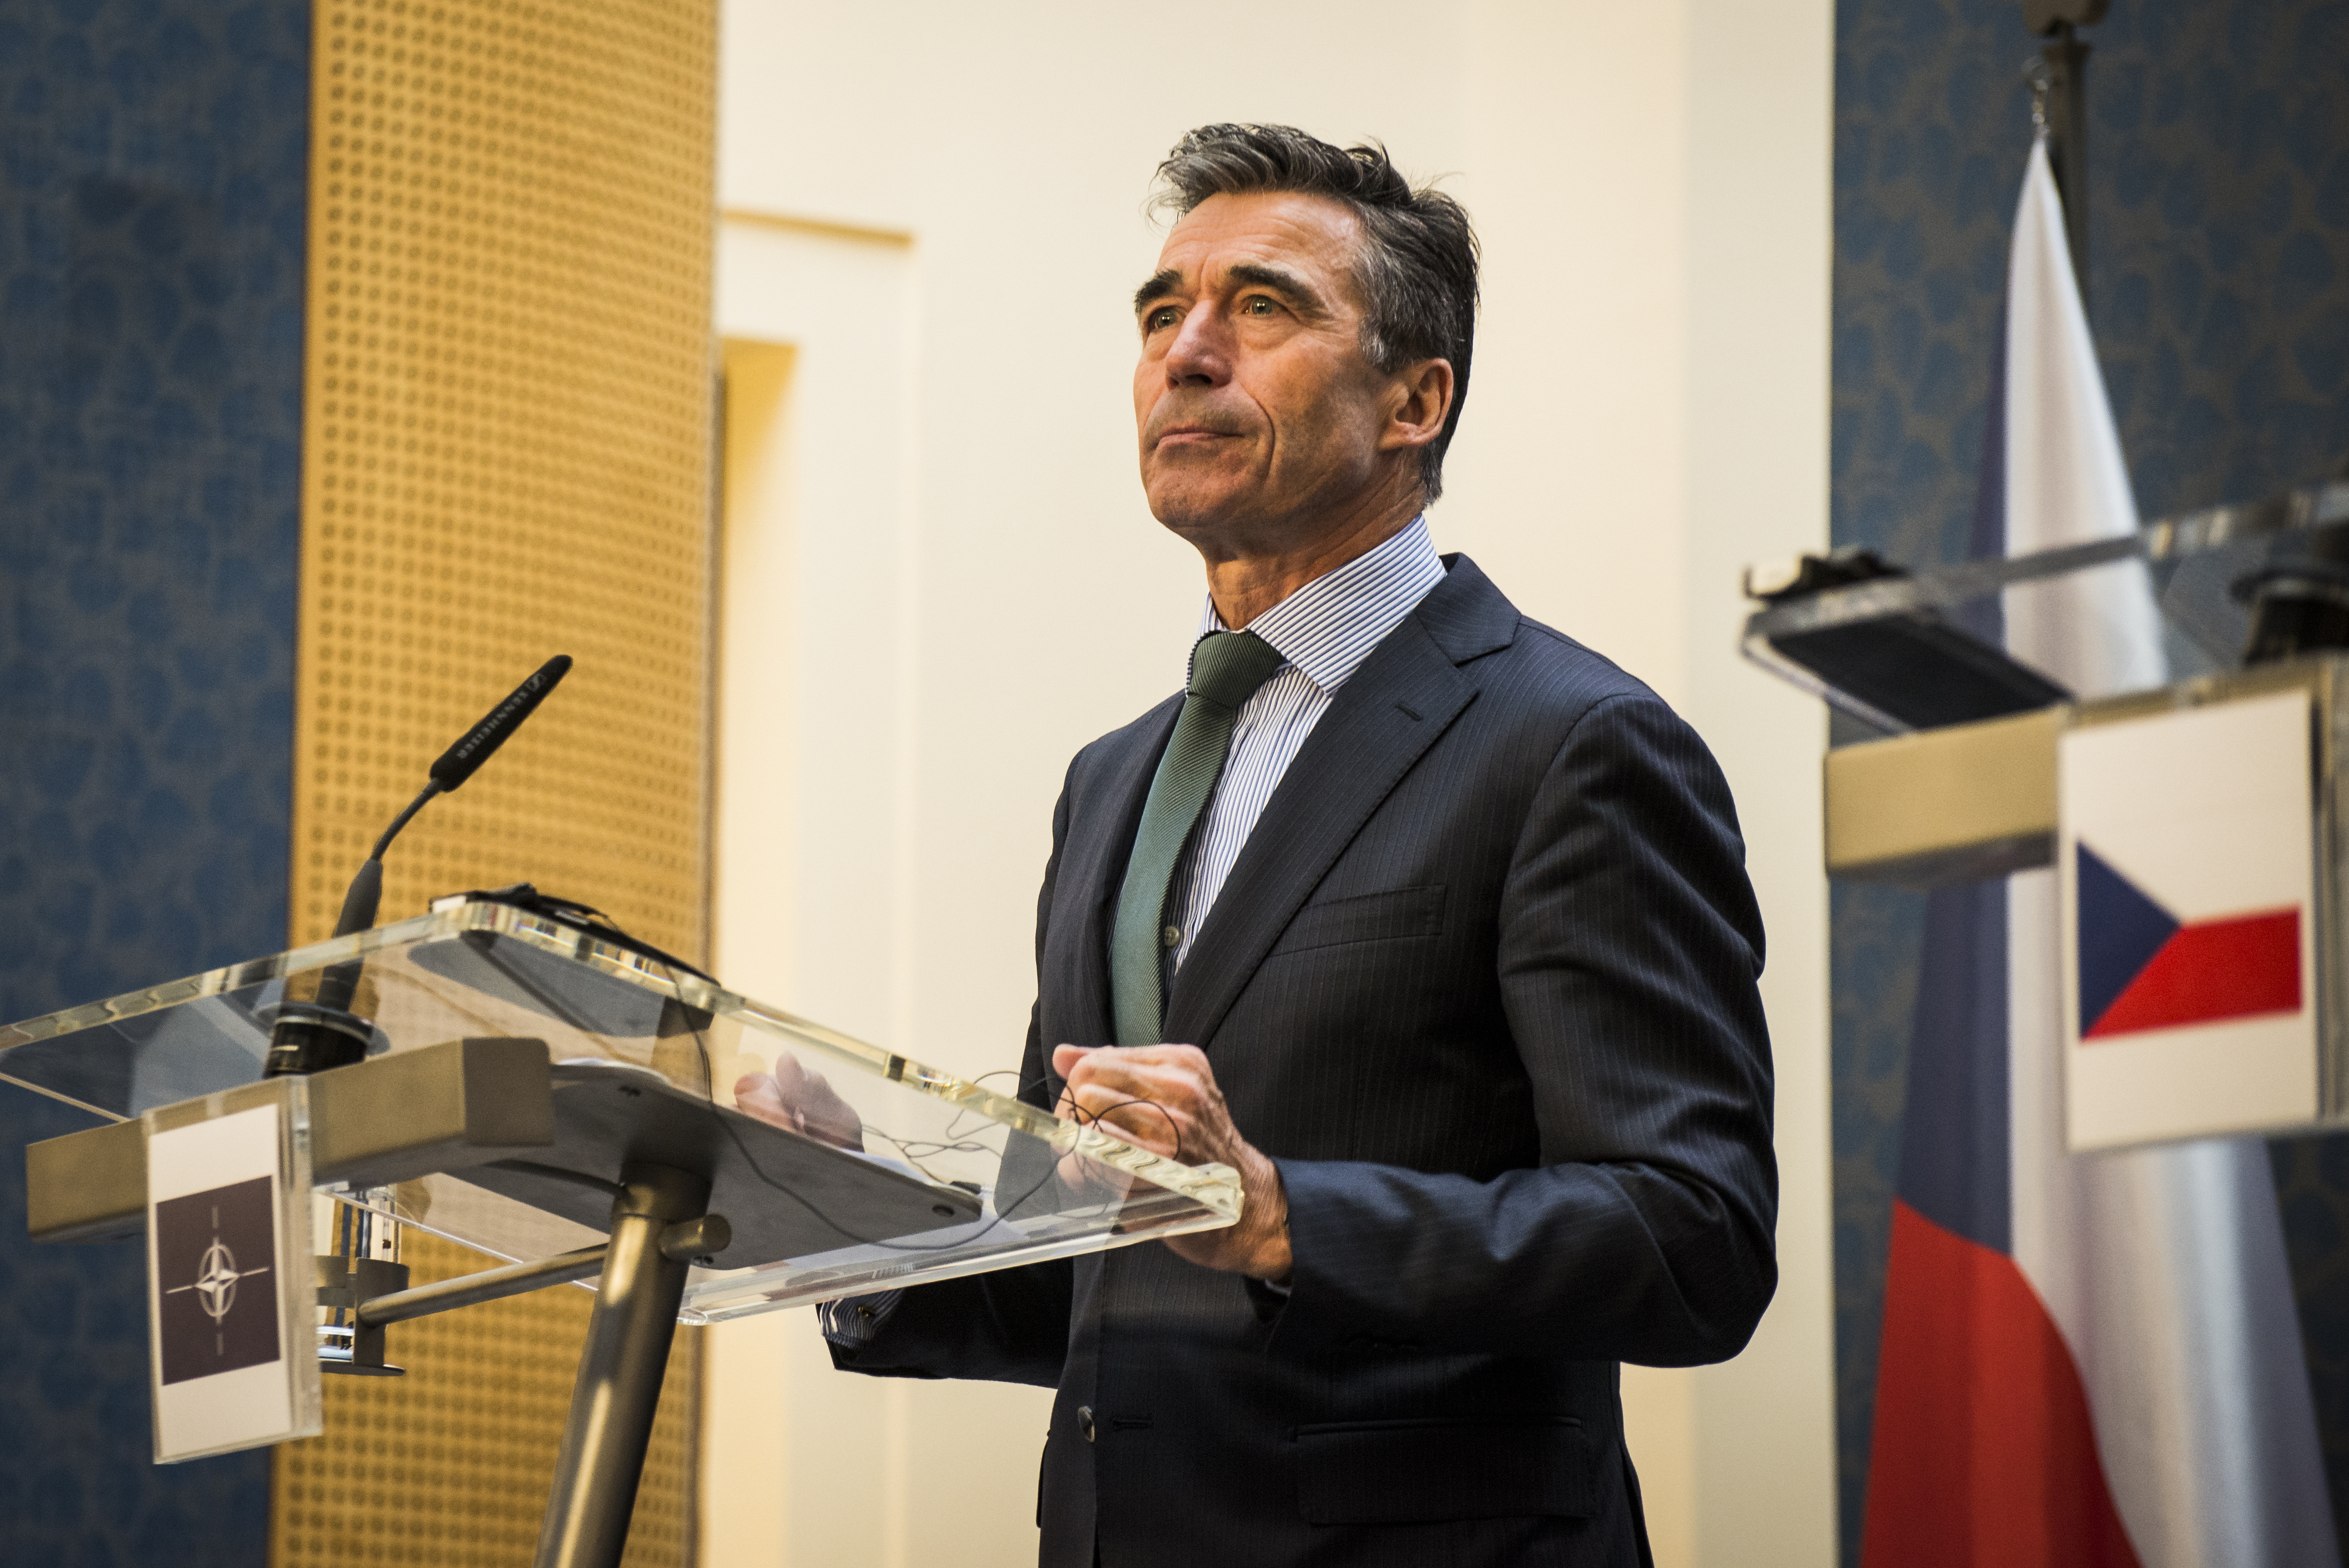 Anders Fogh Rasmussen speaks at a press conference in Prague on April 10, 2014. He issued dire warnings on the Russian troop build-up on Ukraine's border